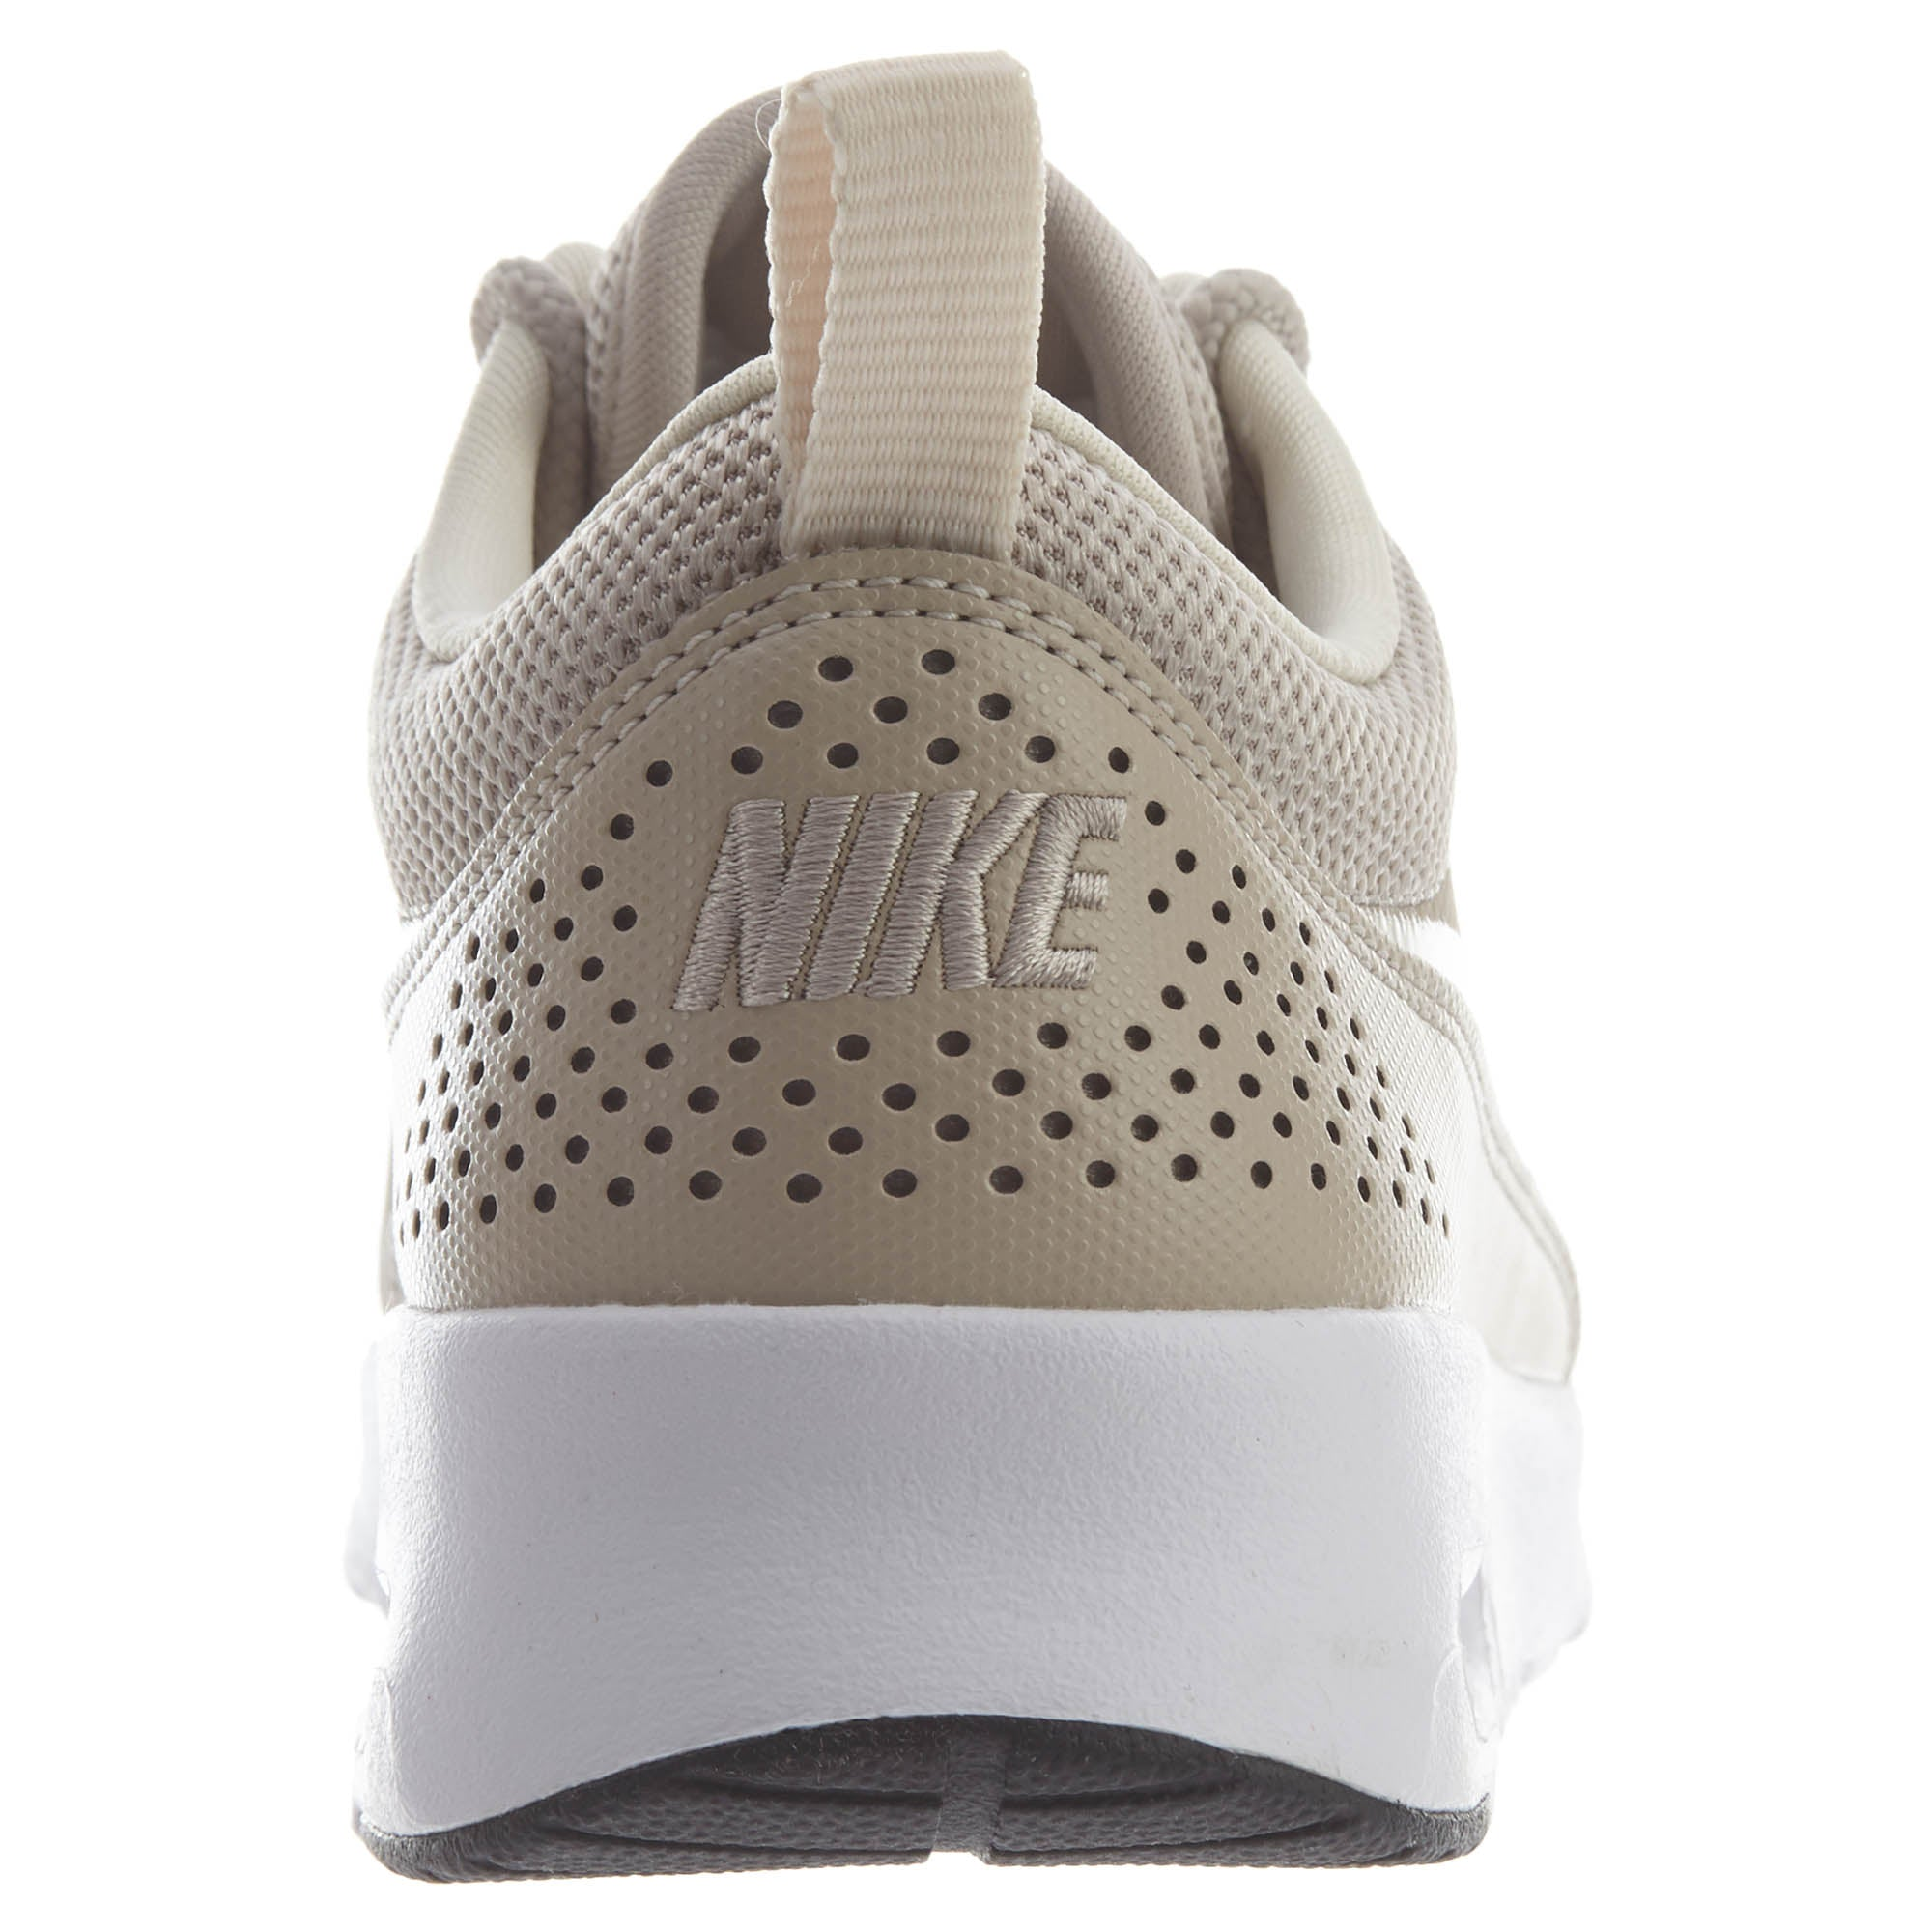 the best attitude a5c3a 16a56 Nike Air Max Thea Womens Style   599409-205 · NIKE   Athletic Shoes    Sneakers